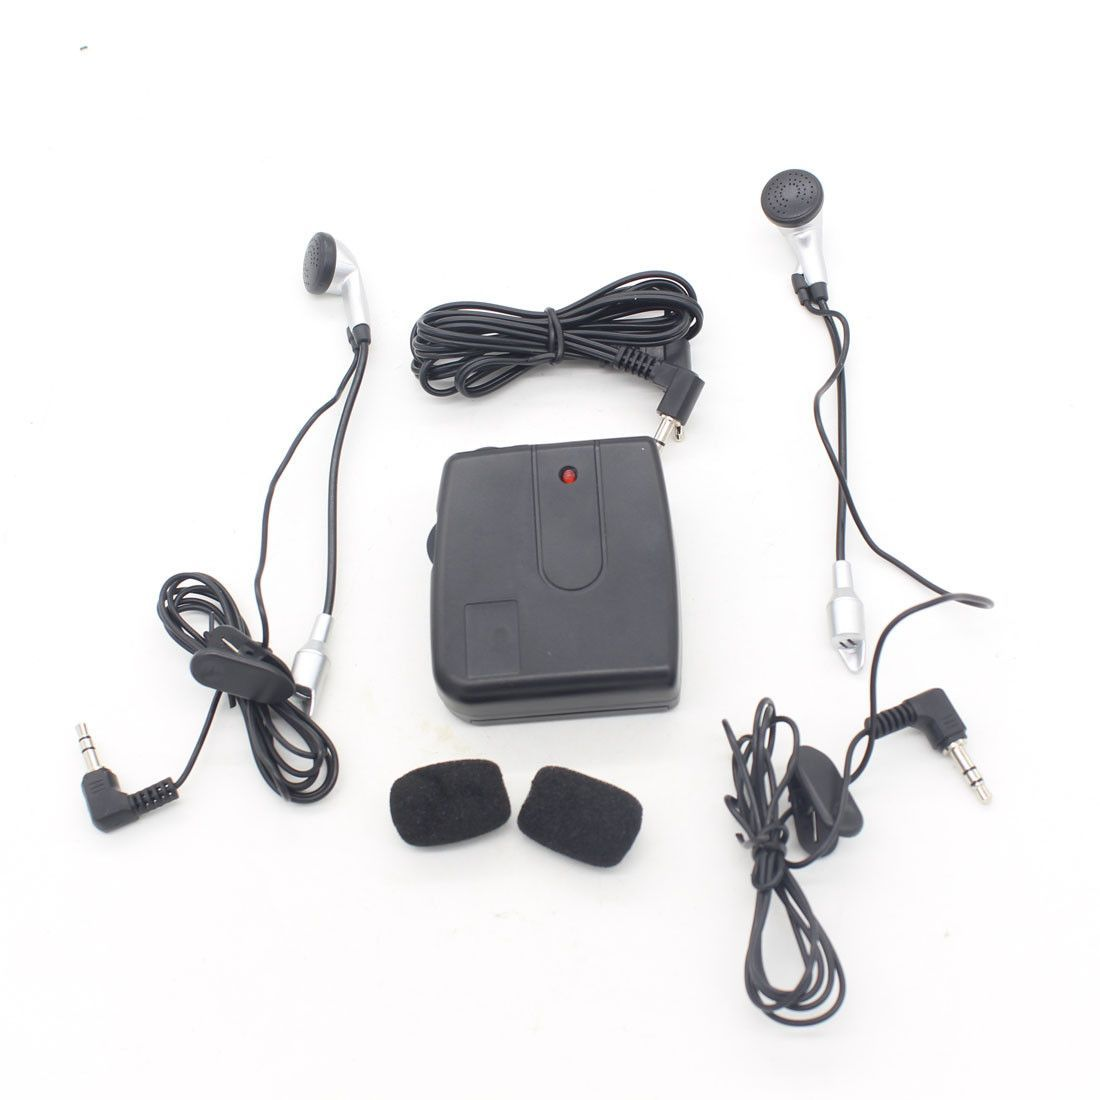 Dongzhen Compact Motorcycle Wired Talkie Portable Headset Intercom ...